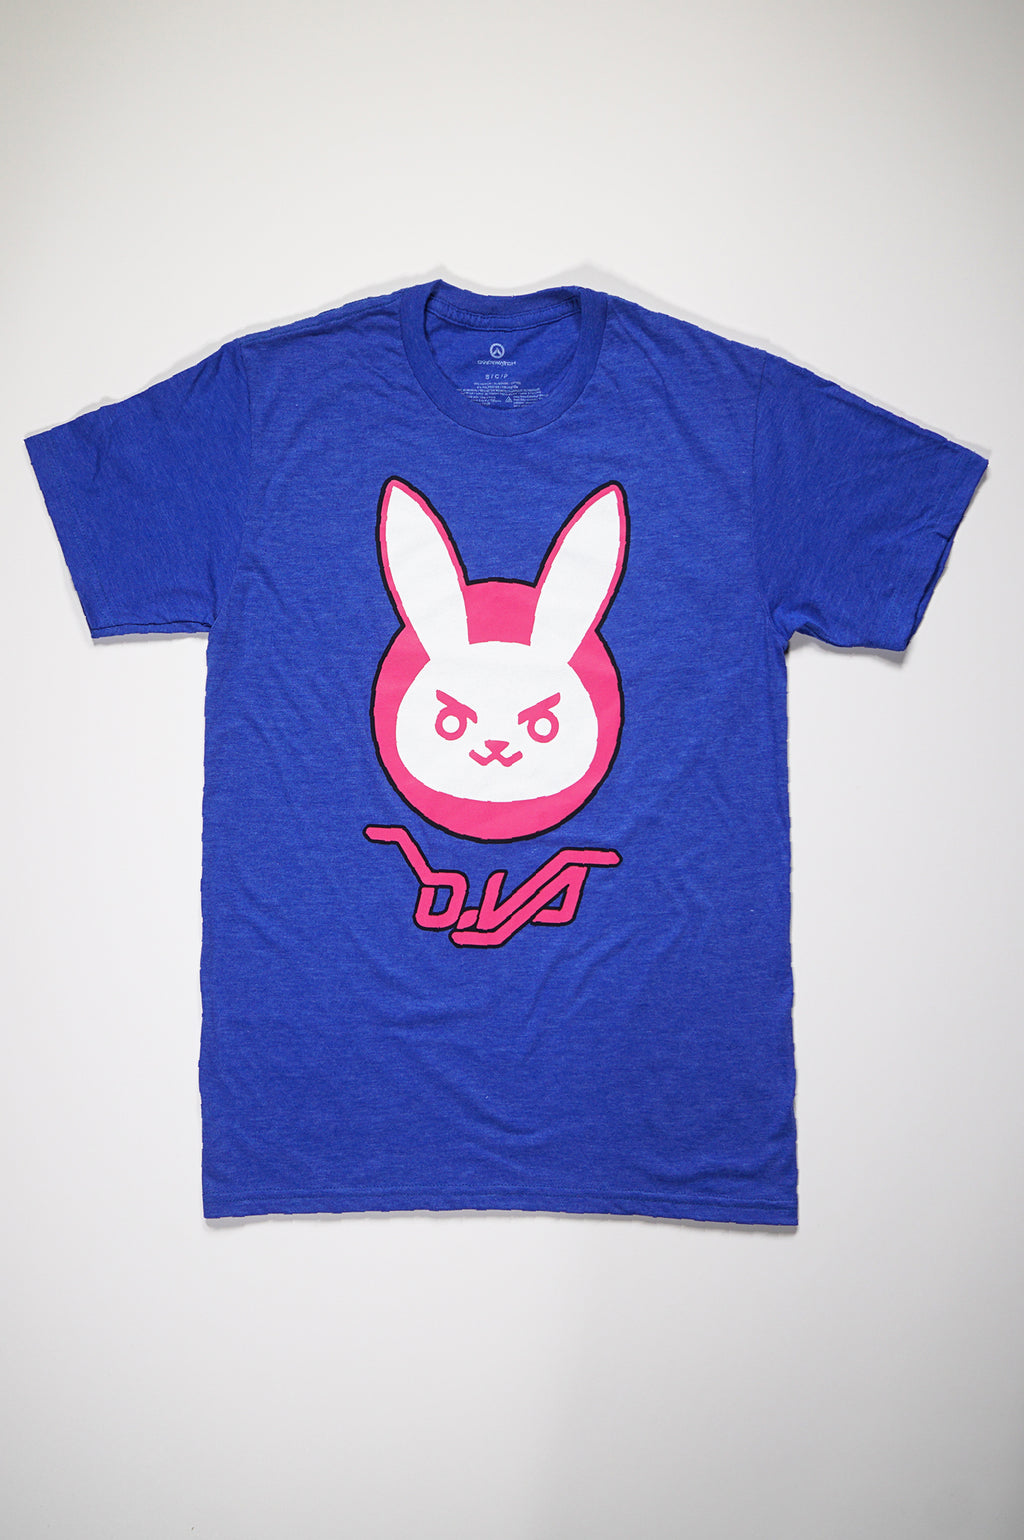 Aao Fashion Mens Overwatch=D-Va Rabbit Tee